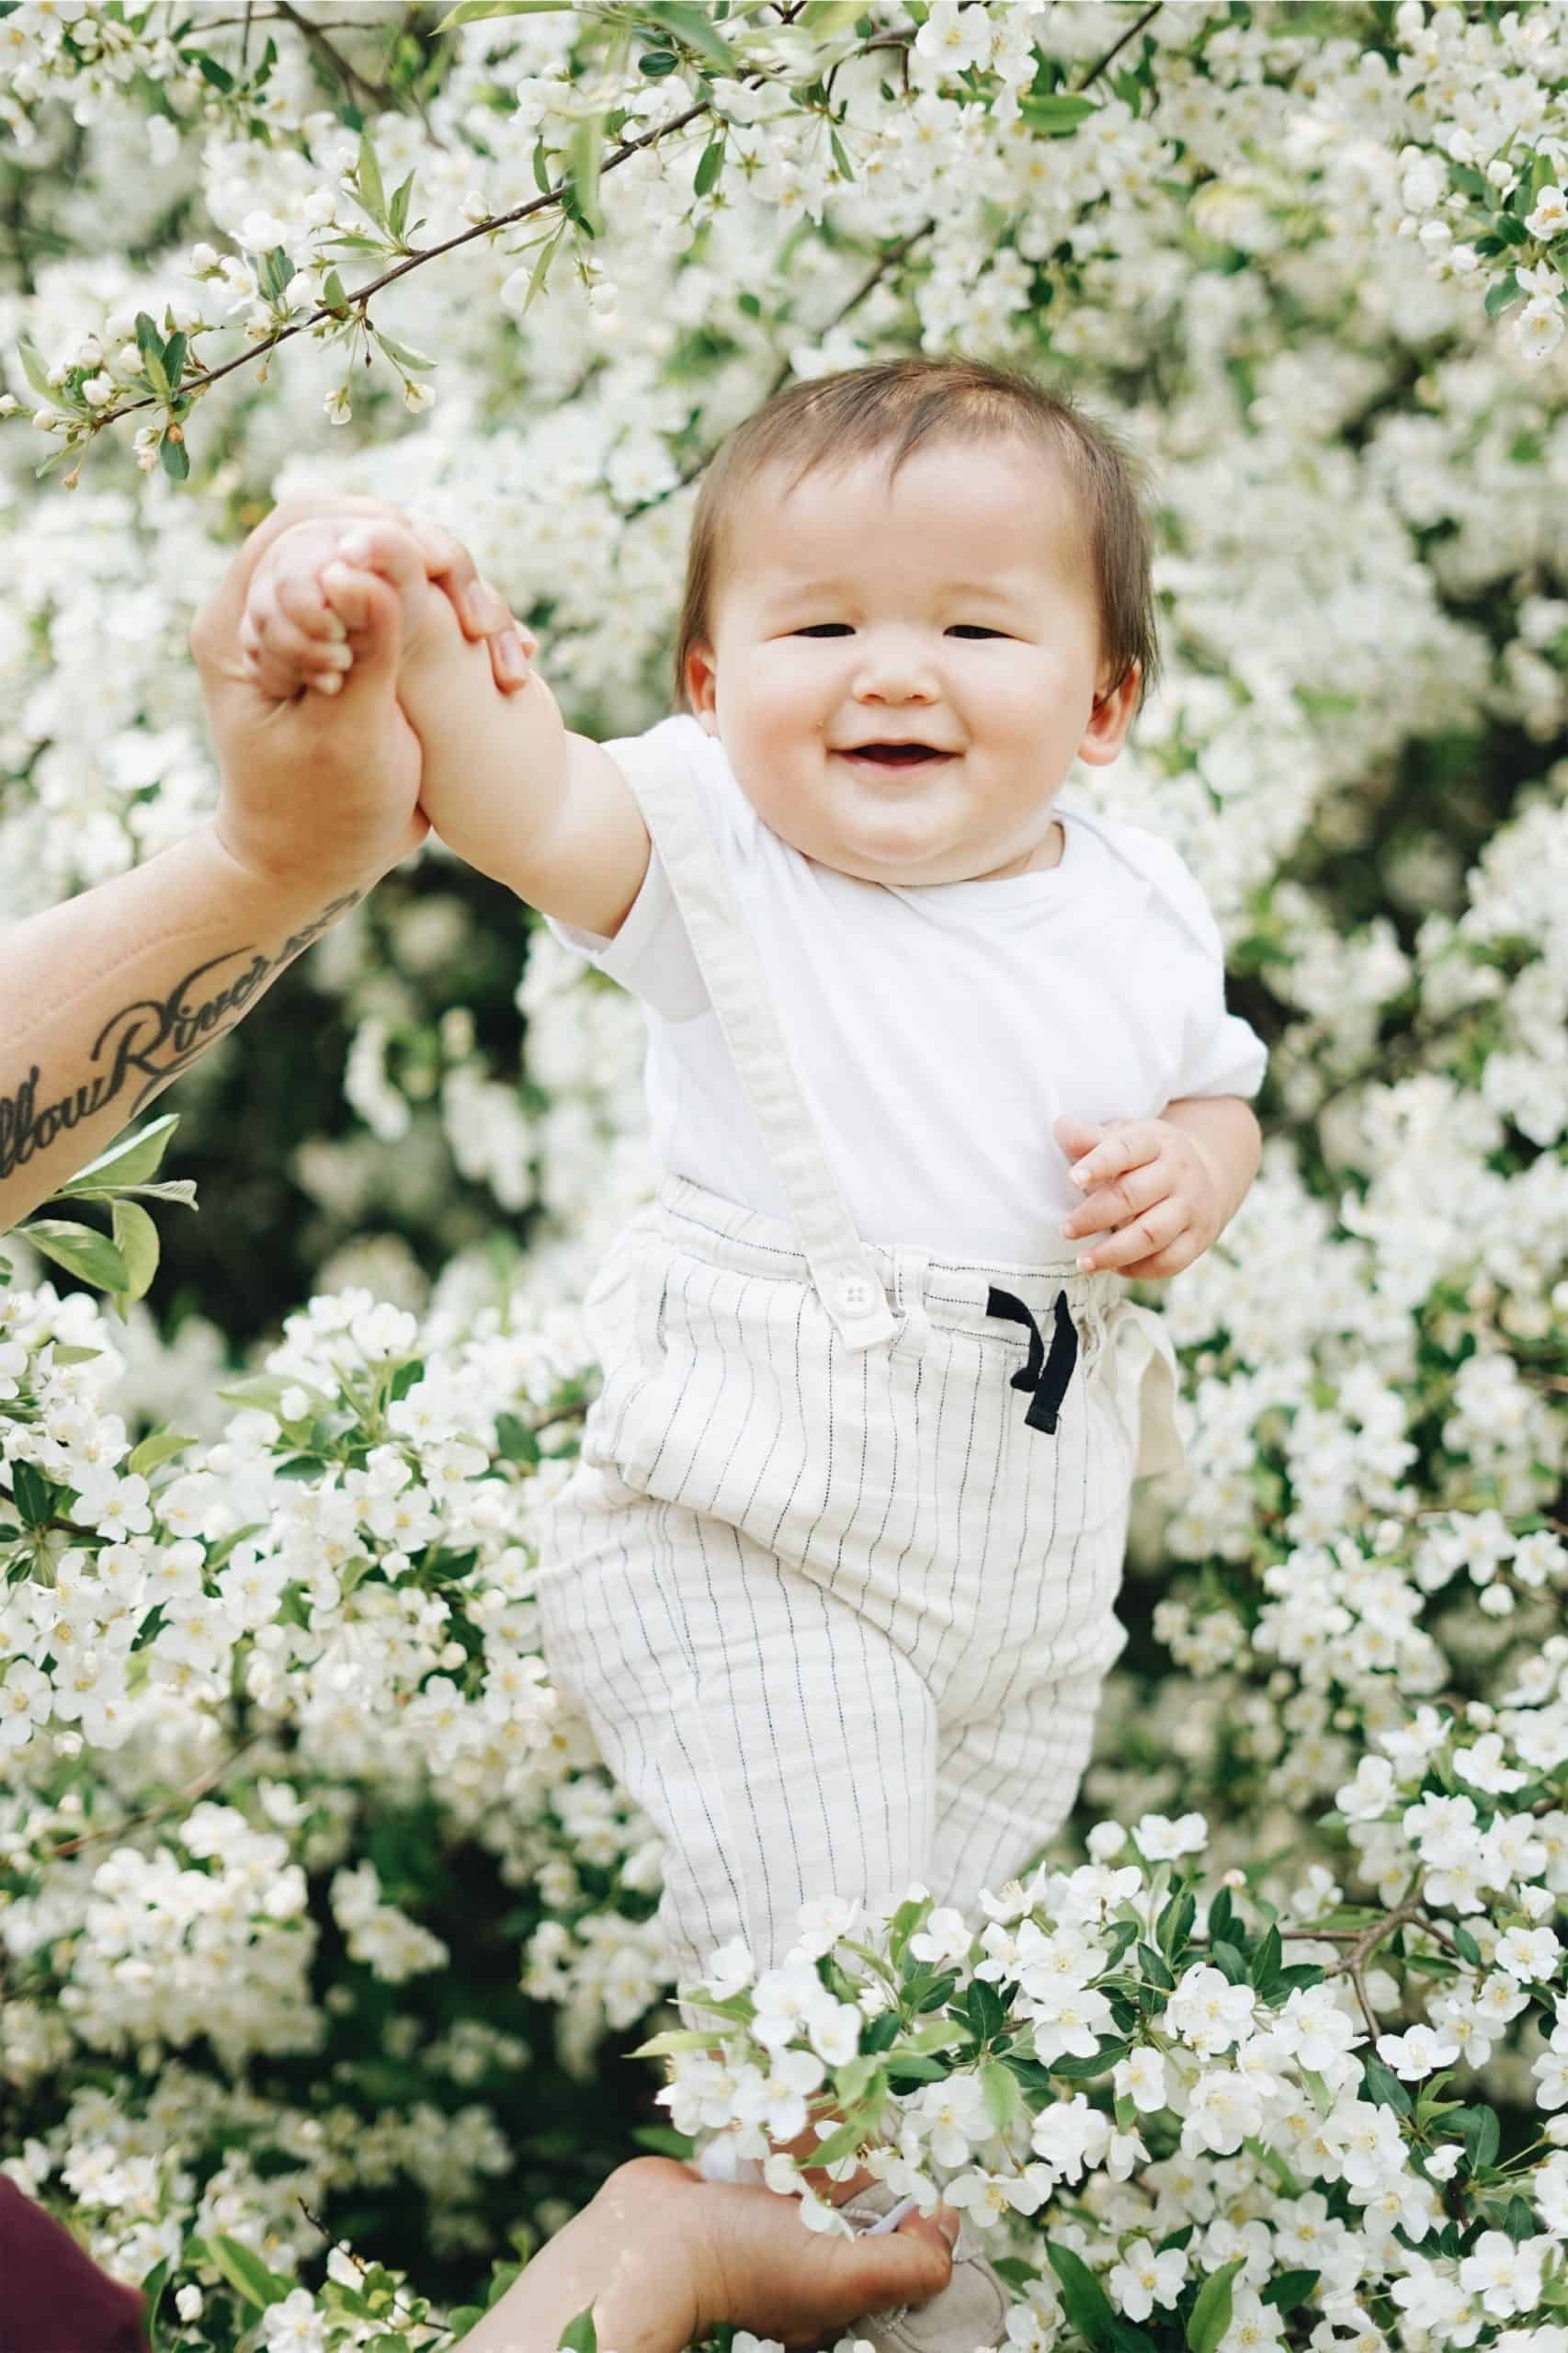 Finding Boutique Baby Dresses For Your Needs